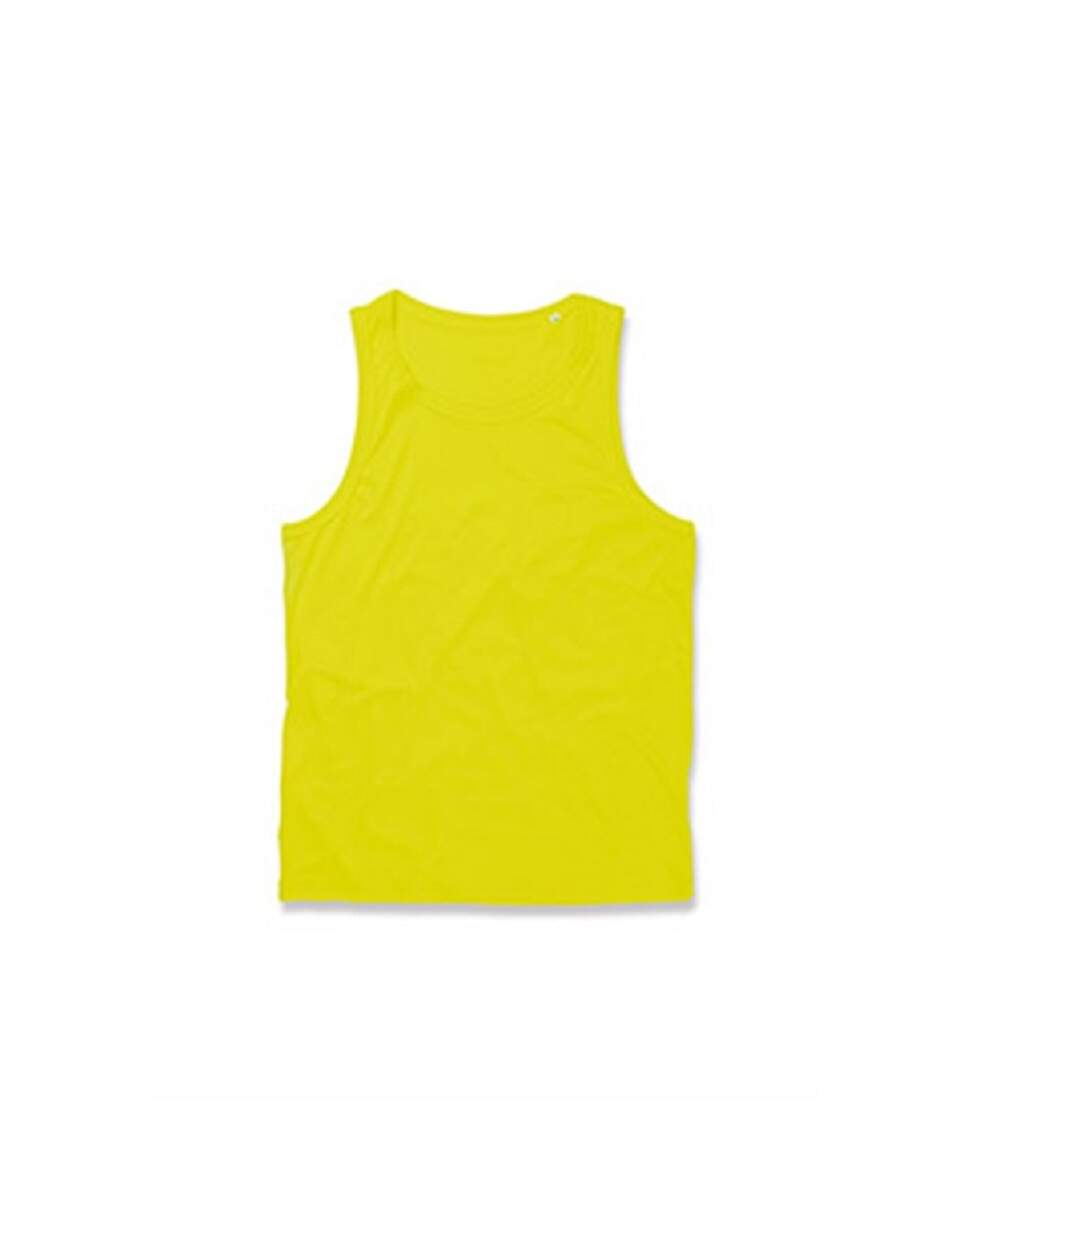 Stedman Mens Active Poly Sports Vest (Cyber Yellow) - UTAB333